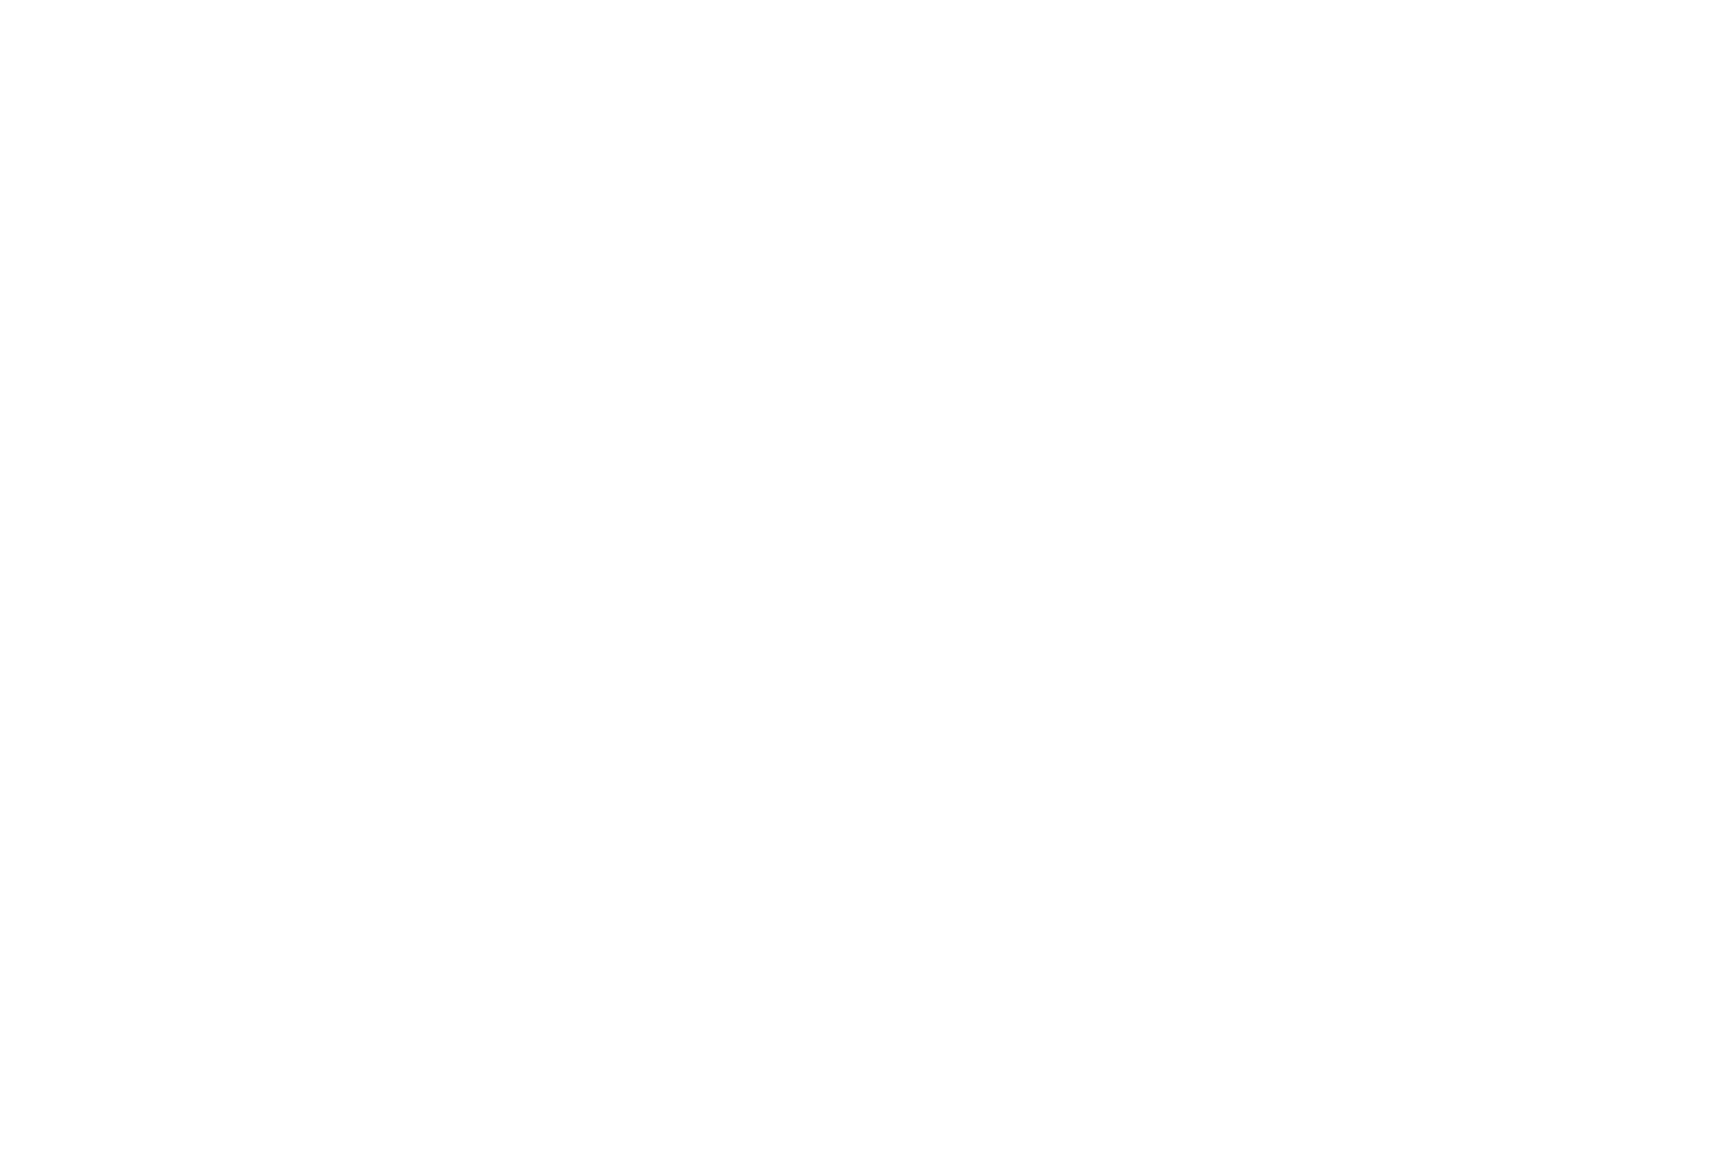 WINNER  - AWARD OF EXCELLENCE  - ACCOLADE GLOBAL FILM COMPETITION 2016 (1).png